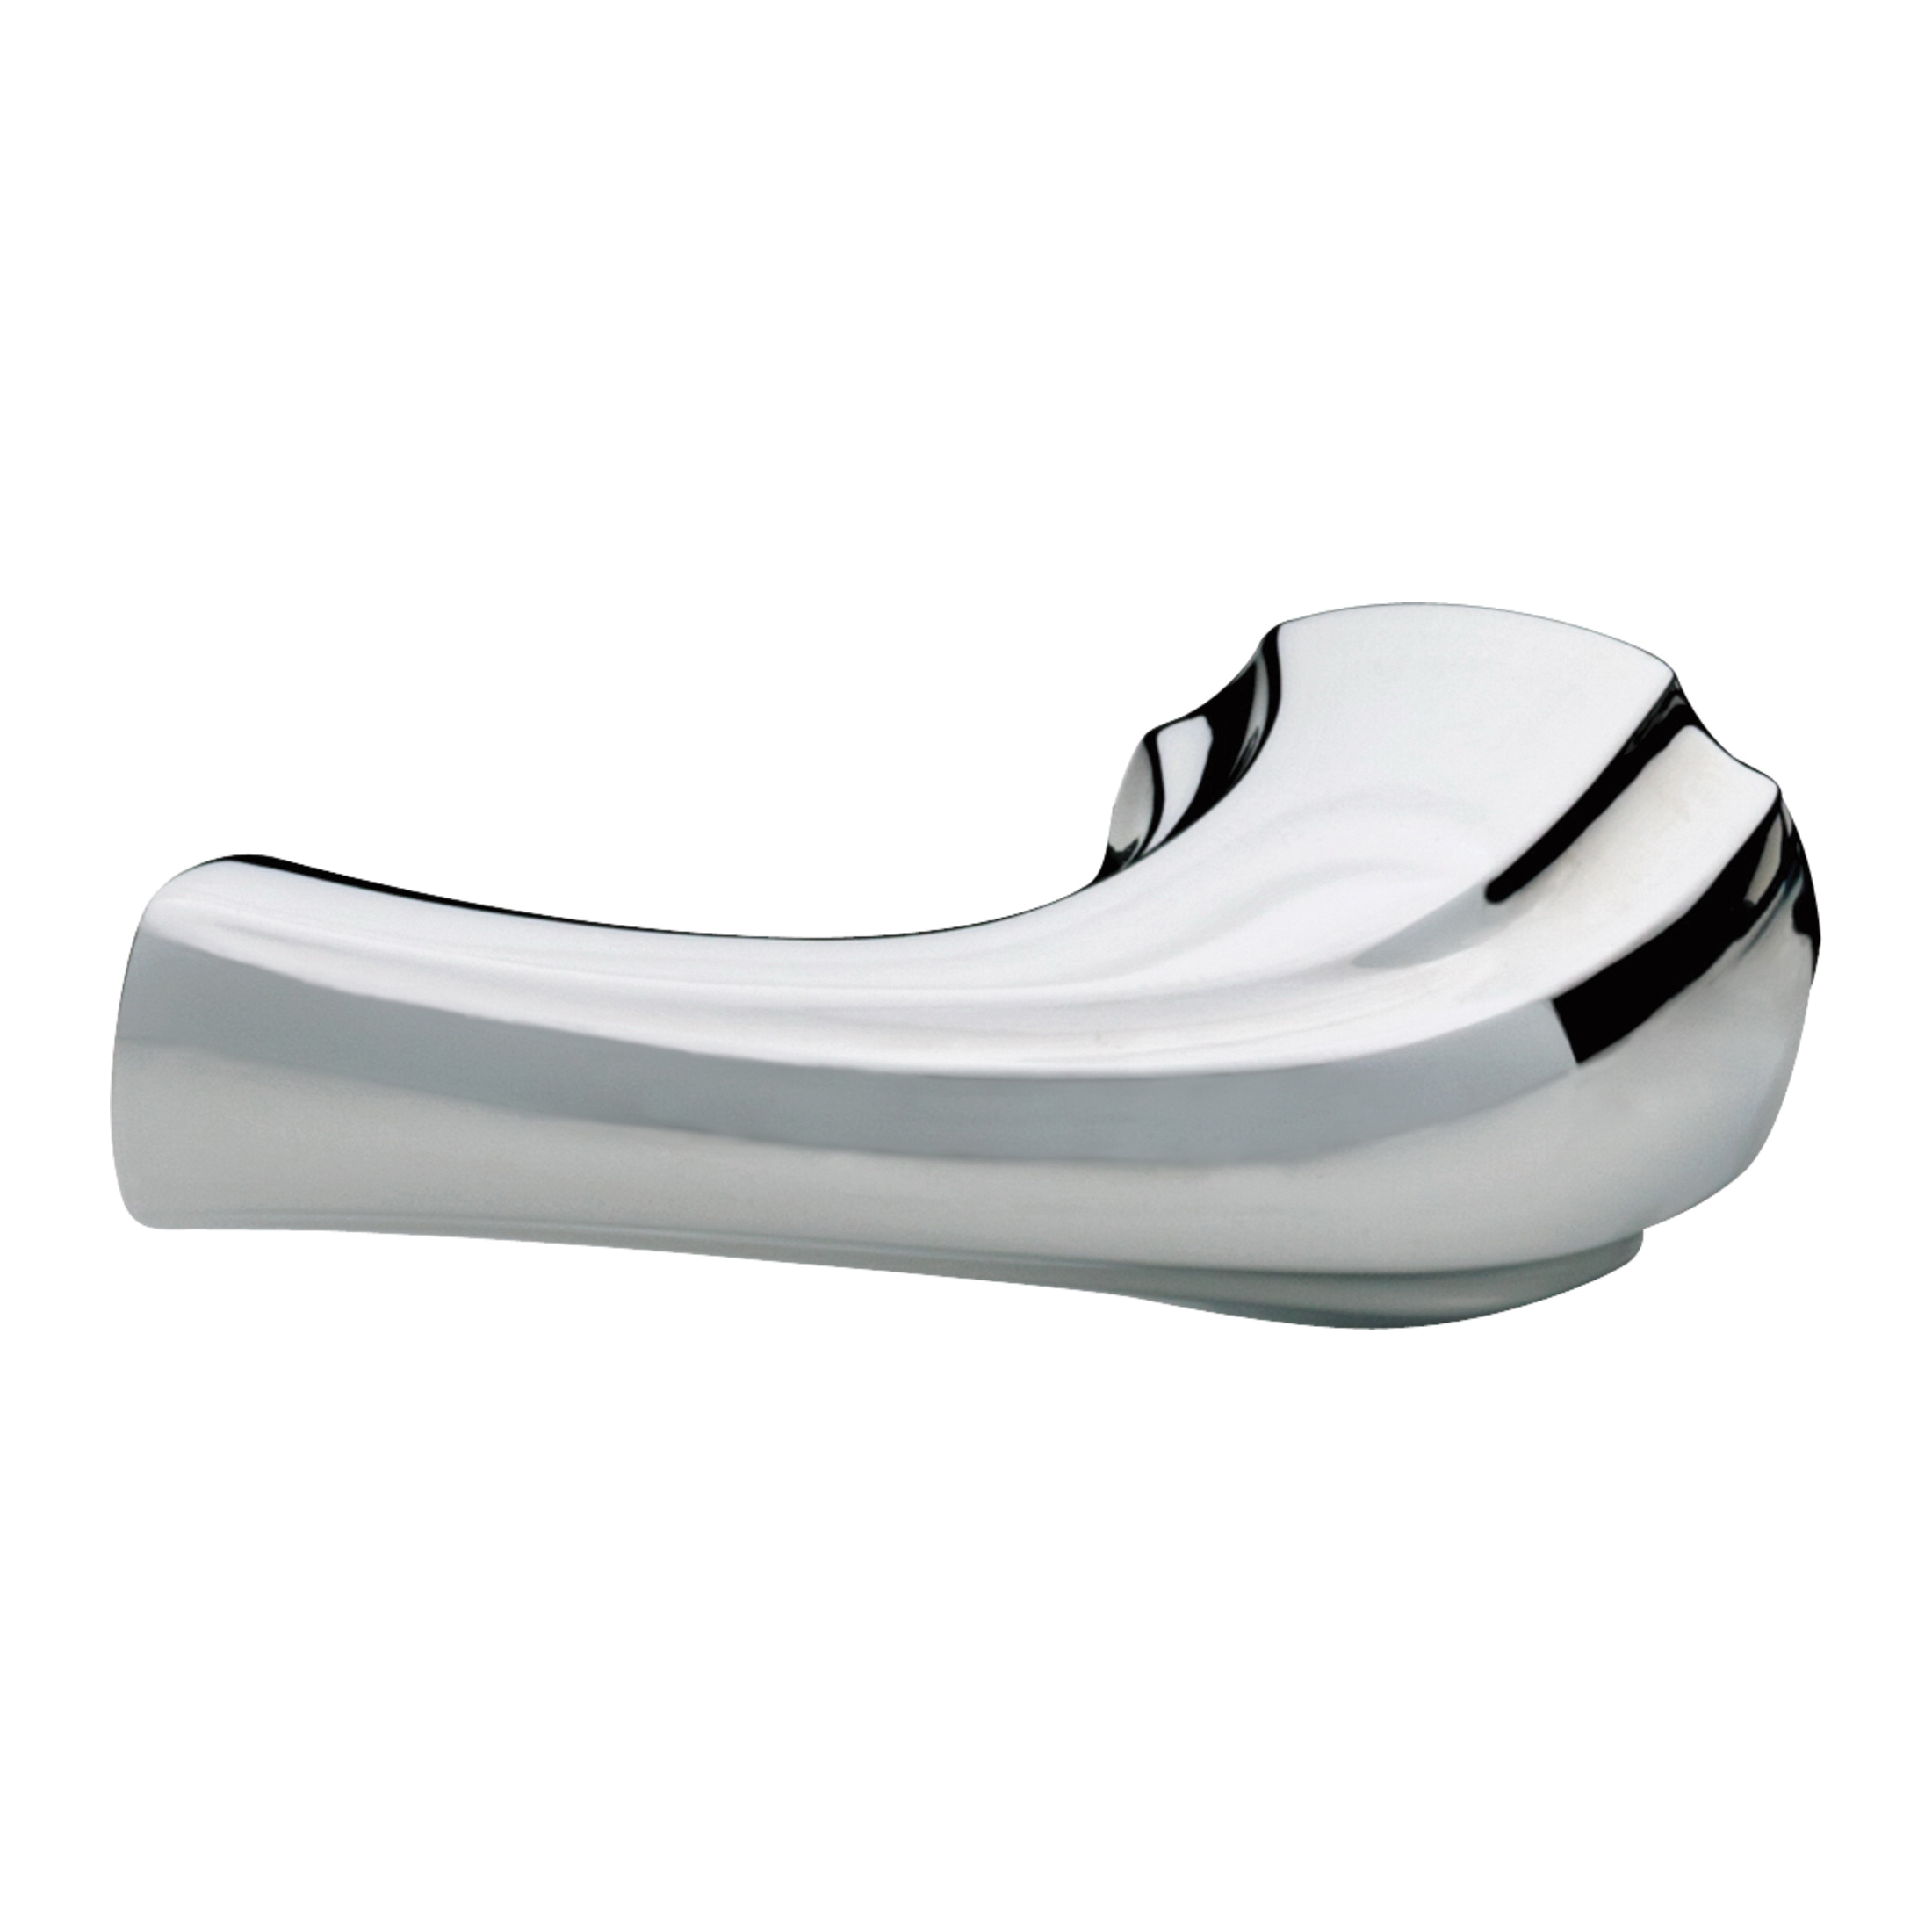 DELTA® 79260 Addison™ Modern Toilet Tank Lever, 3-1/8 in L Arm, Chrome Plated, Import